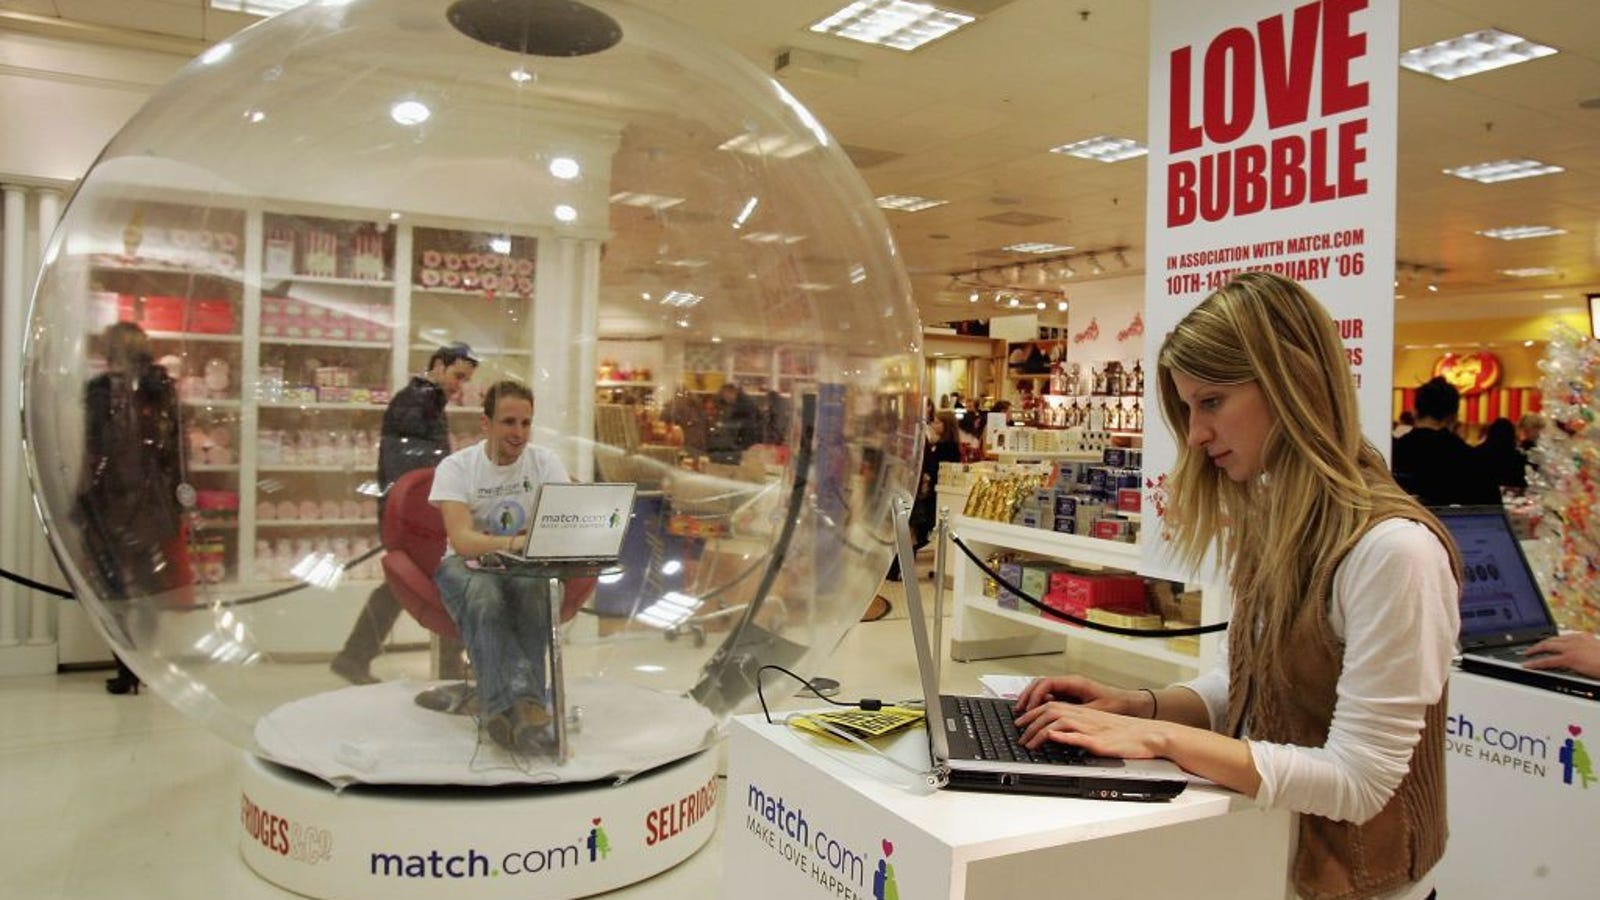 Match.com Knowingly Profited Off Romance Scammers, FTC Suit Claims